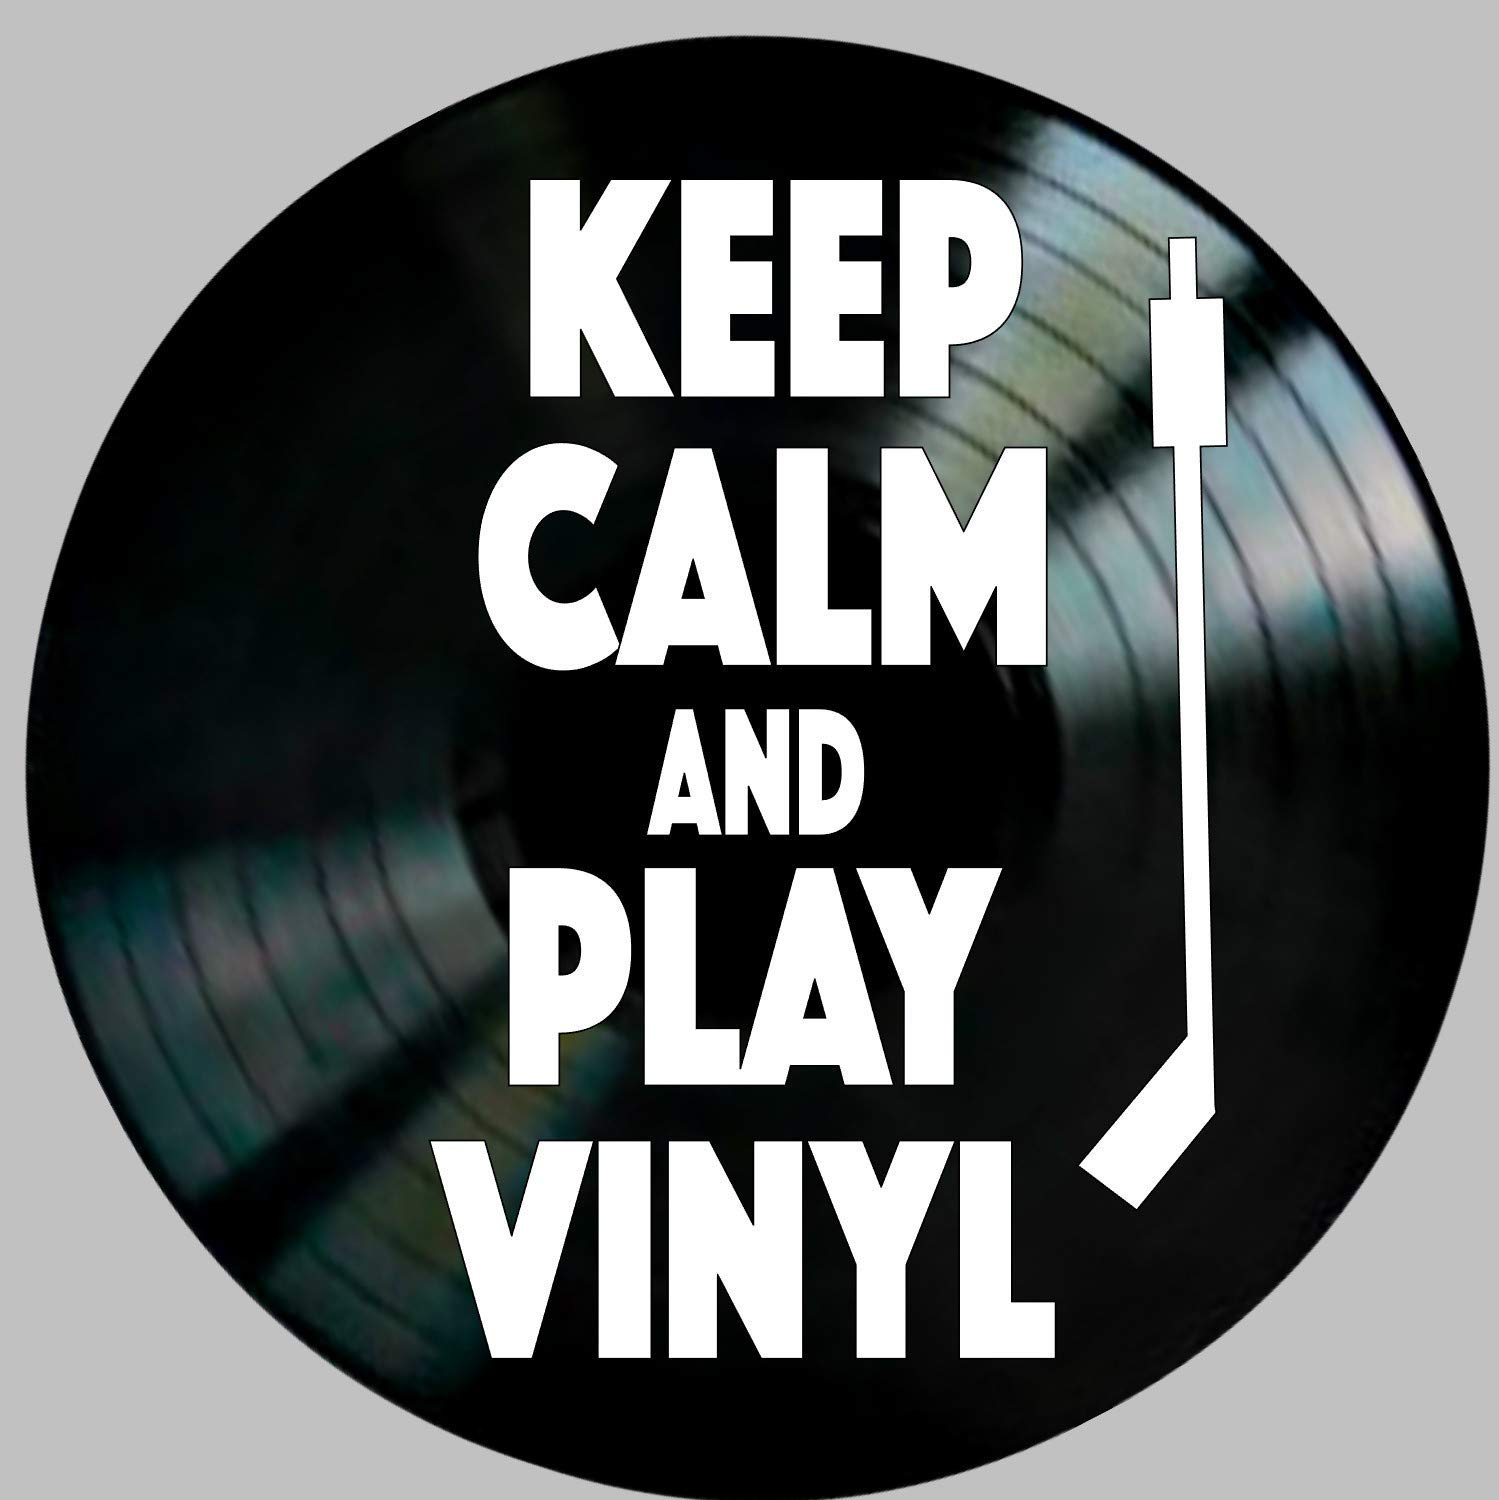 Keep Calm and Play Vinyl quote on a Record Album Wall Art Home Decor Gift